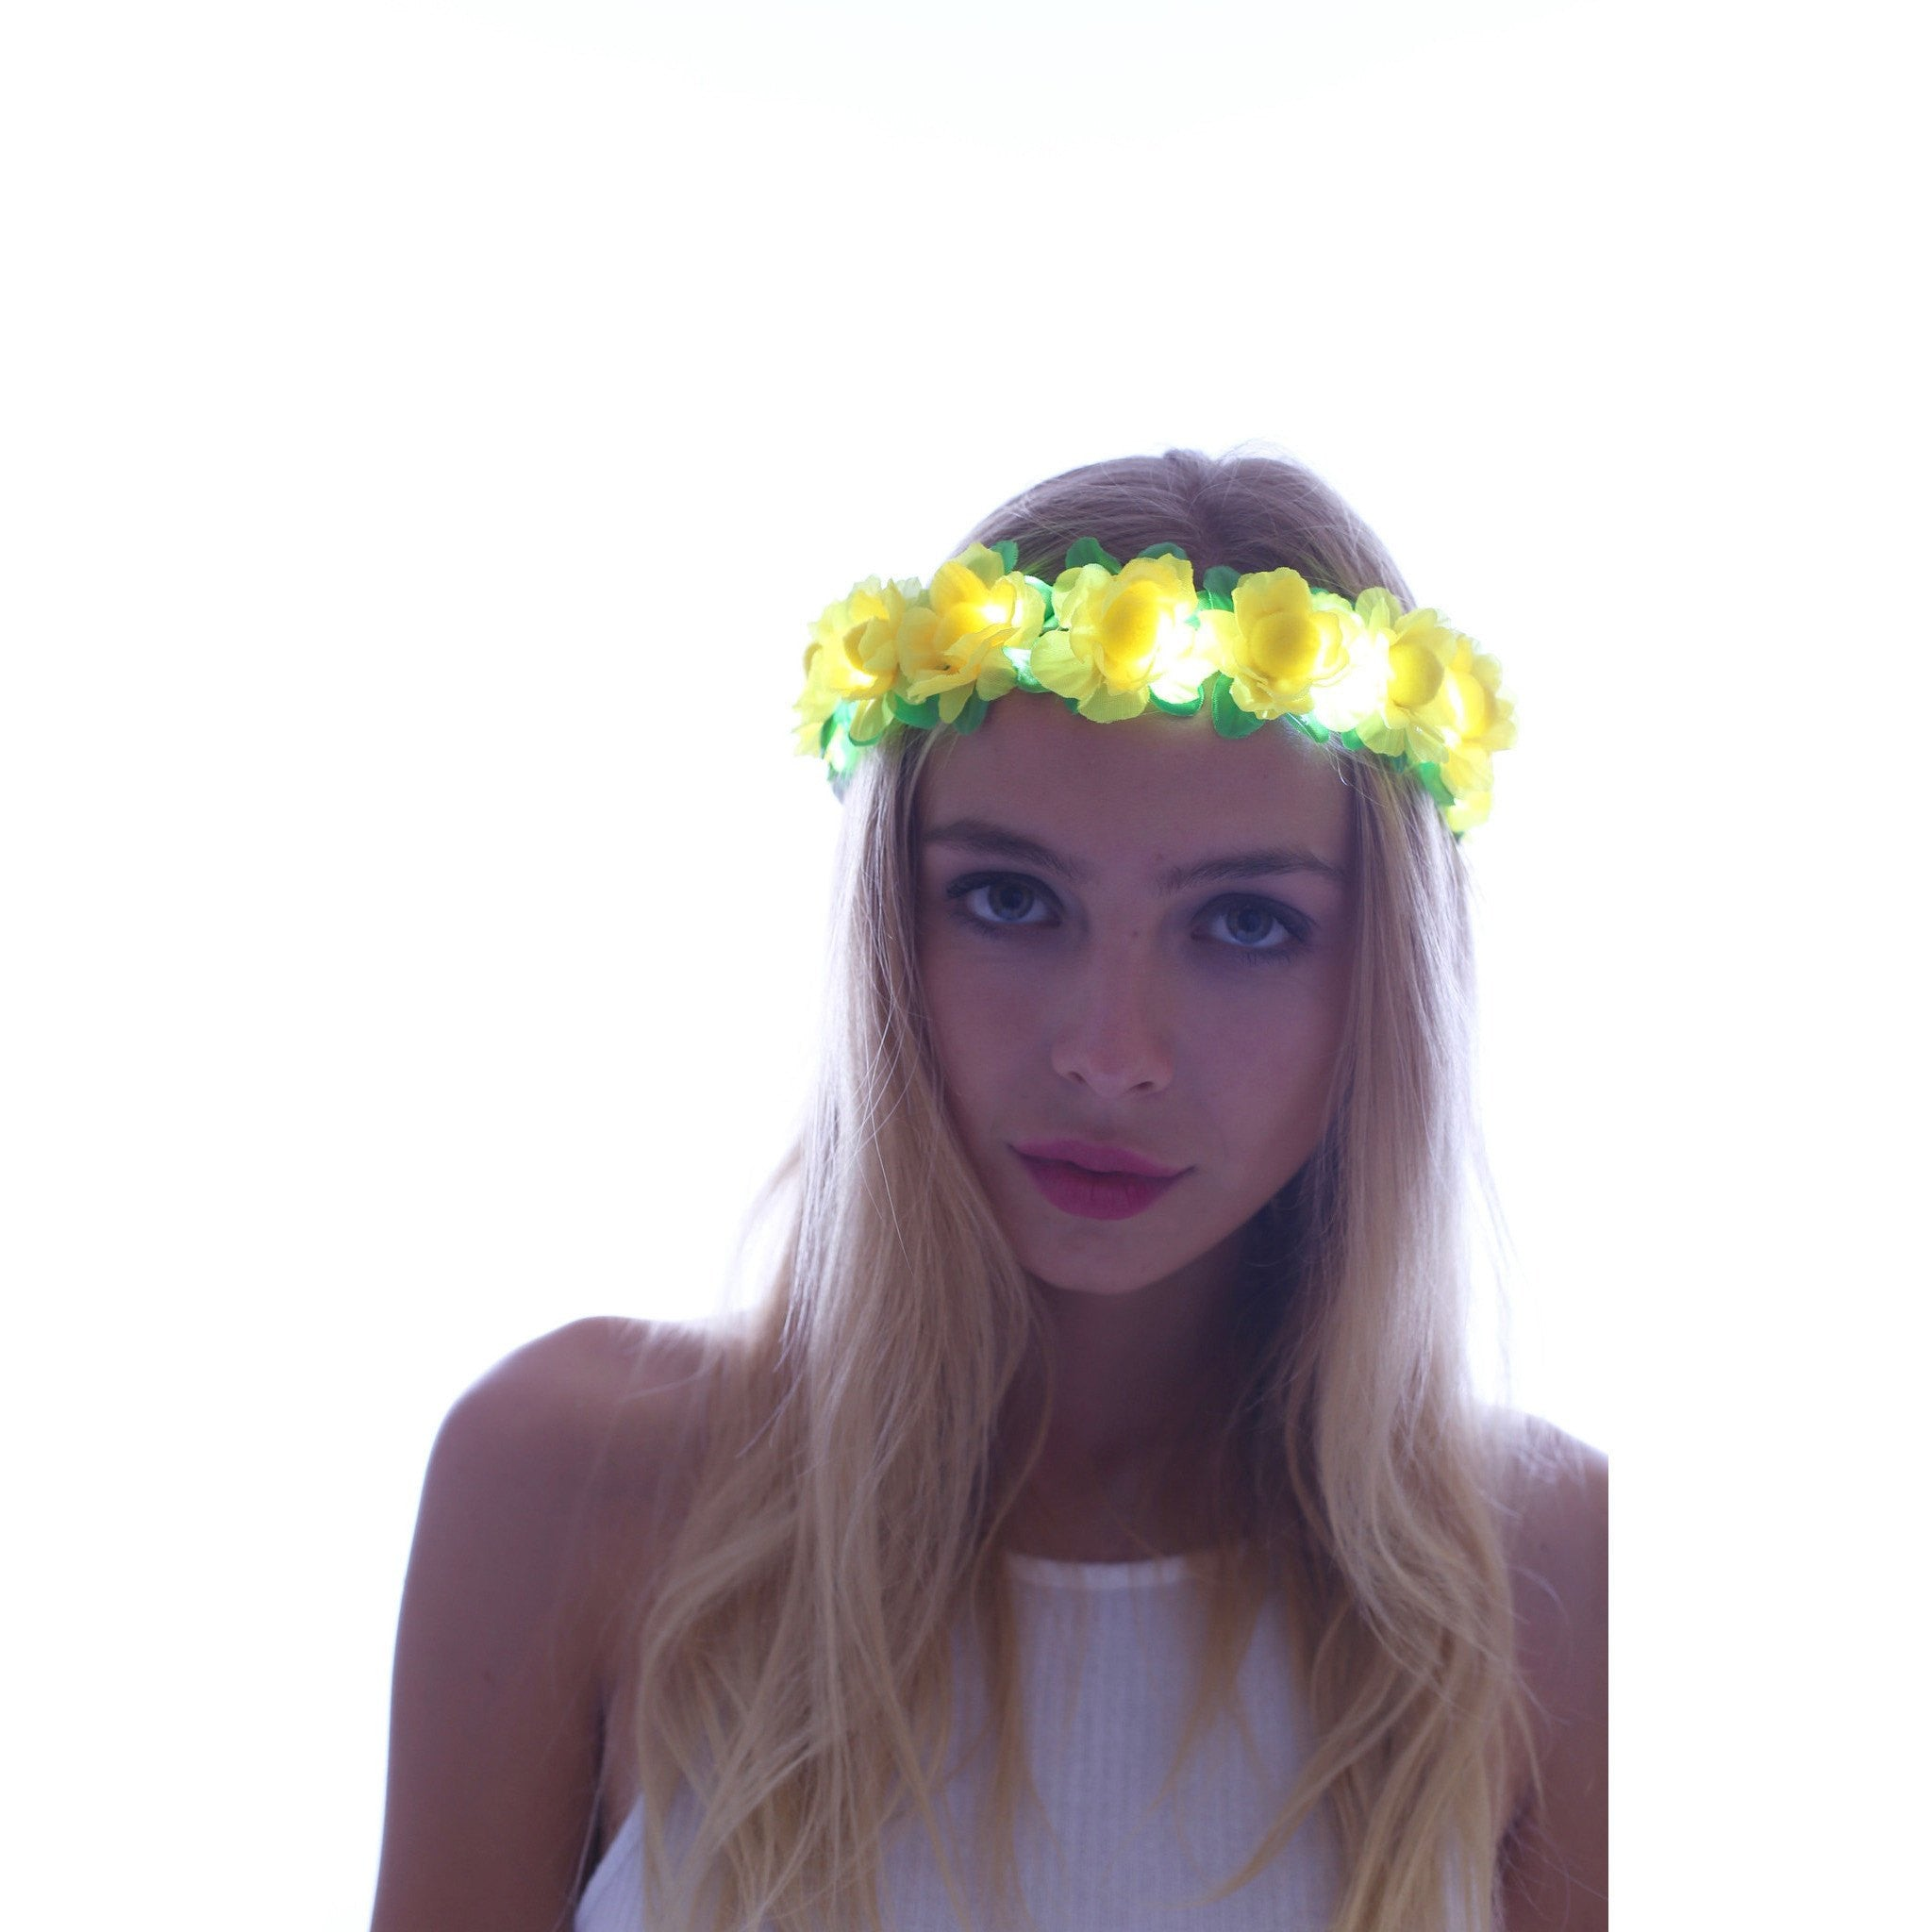 Yellow-LED Light Up Flower Crown - Rave Rebel